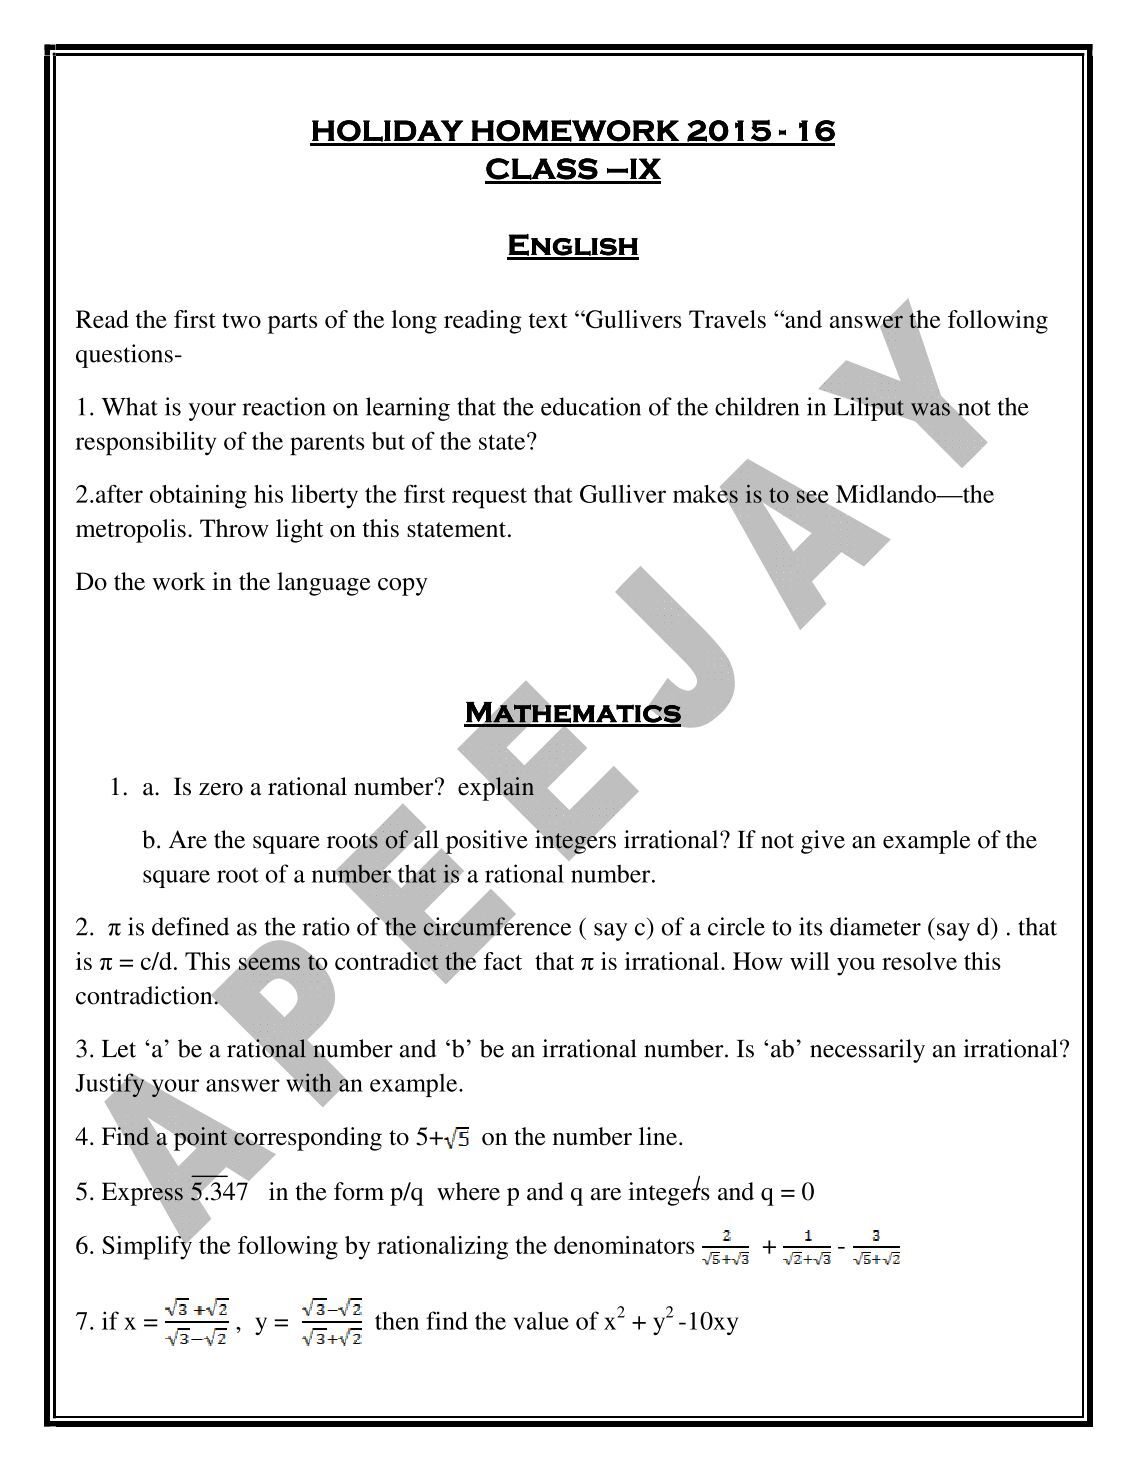 Essay on winter vacation in india